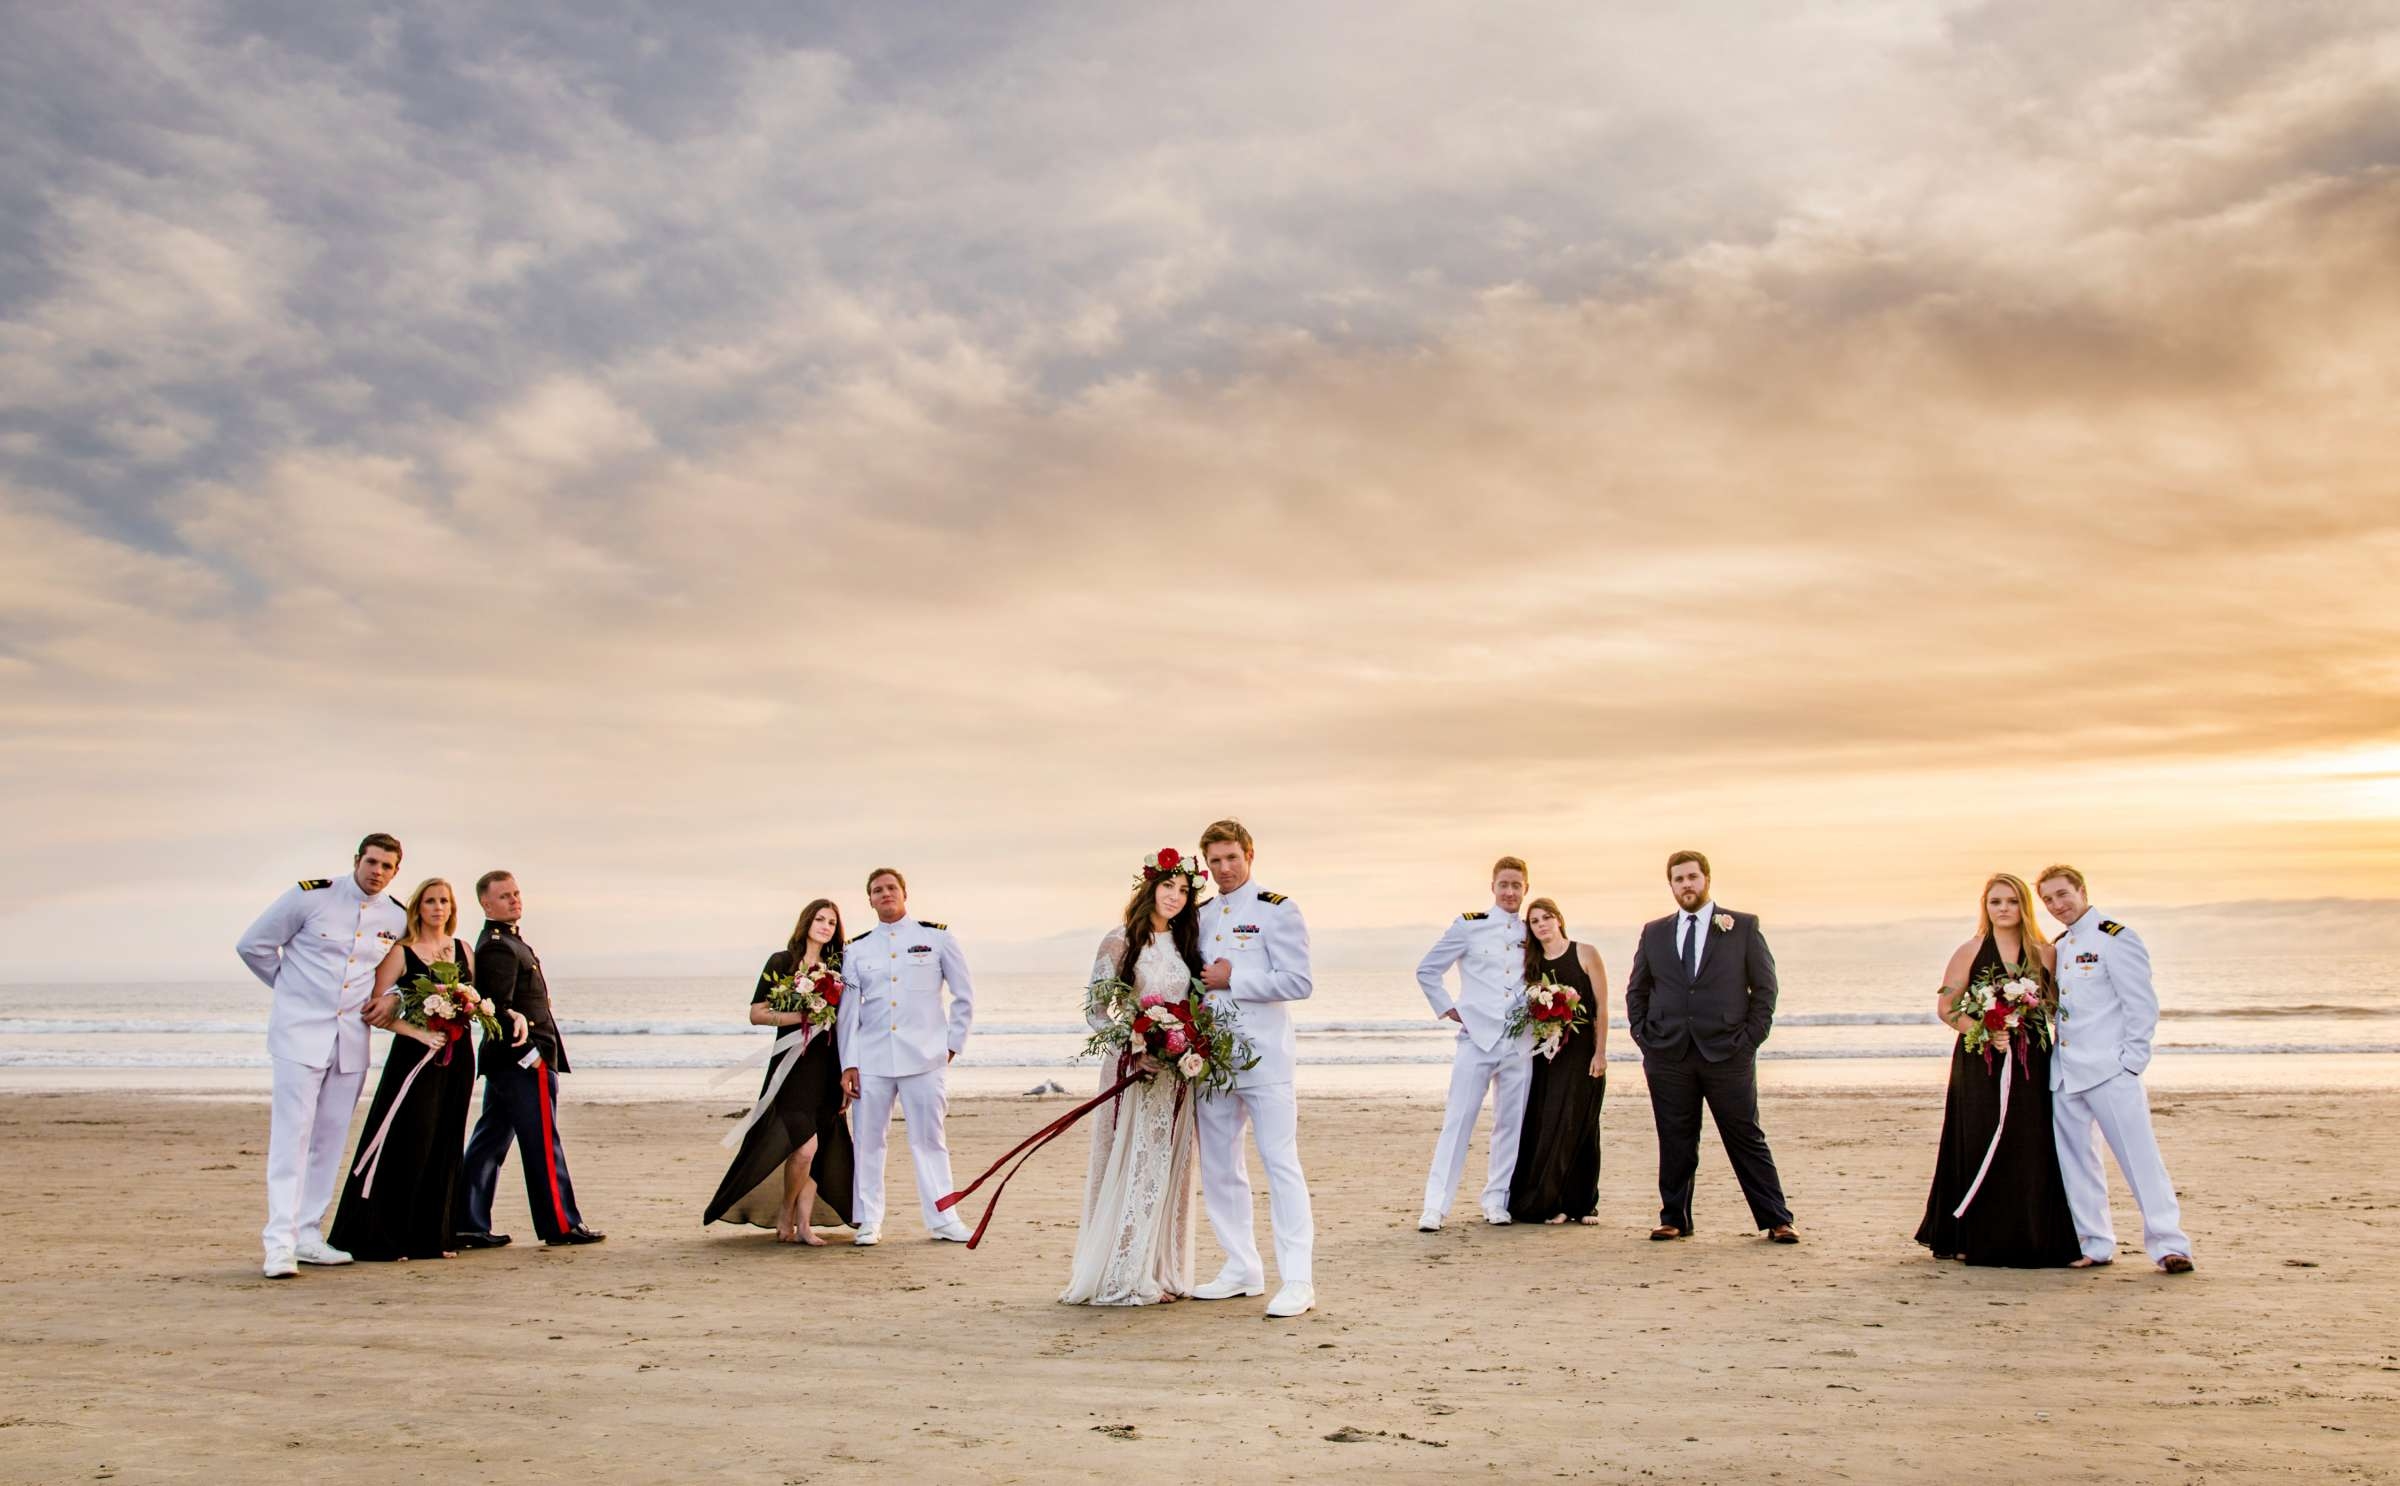 Bridal Party at Wedding, Christina and William Wedding Photo #6 by True Photography